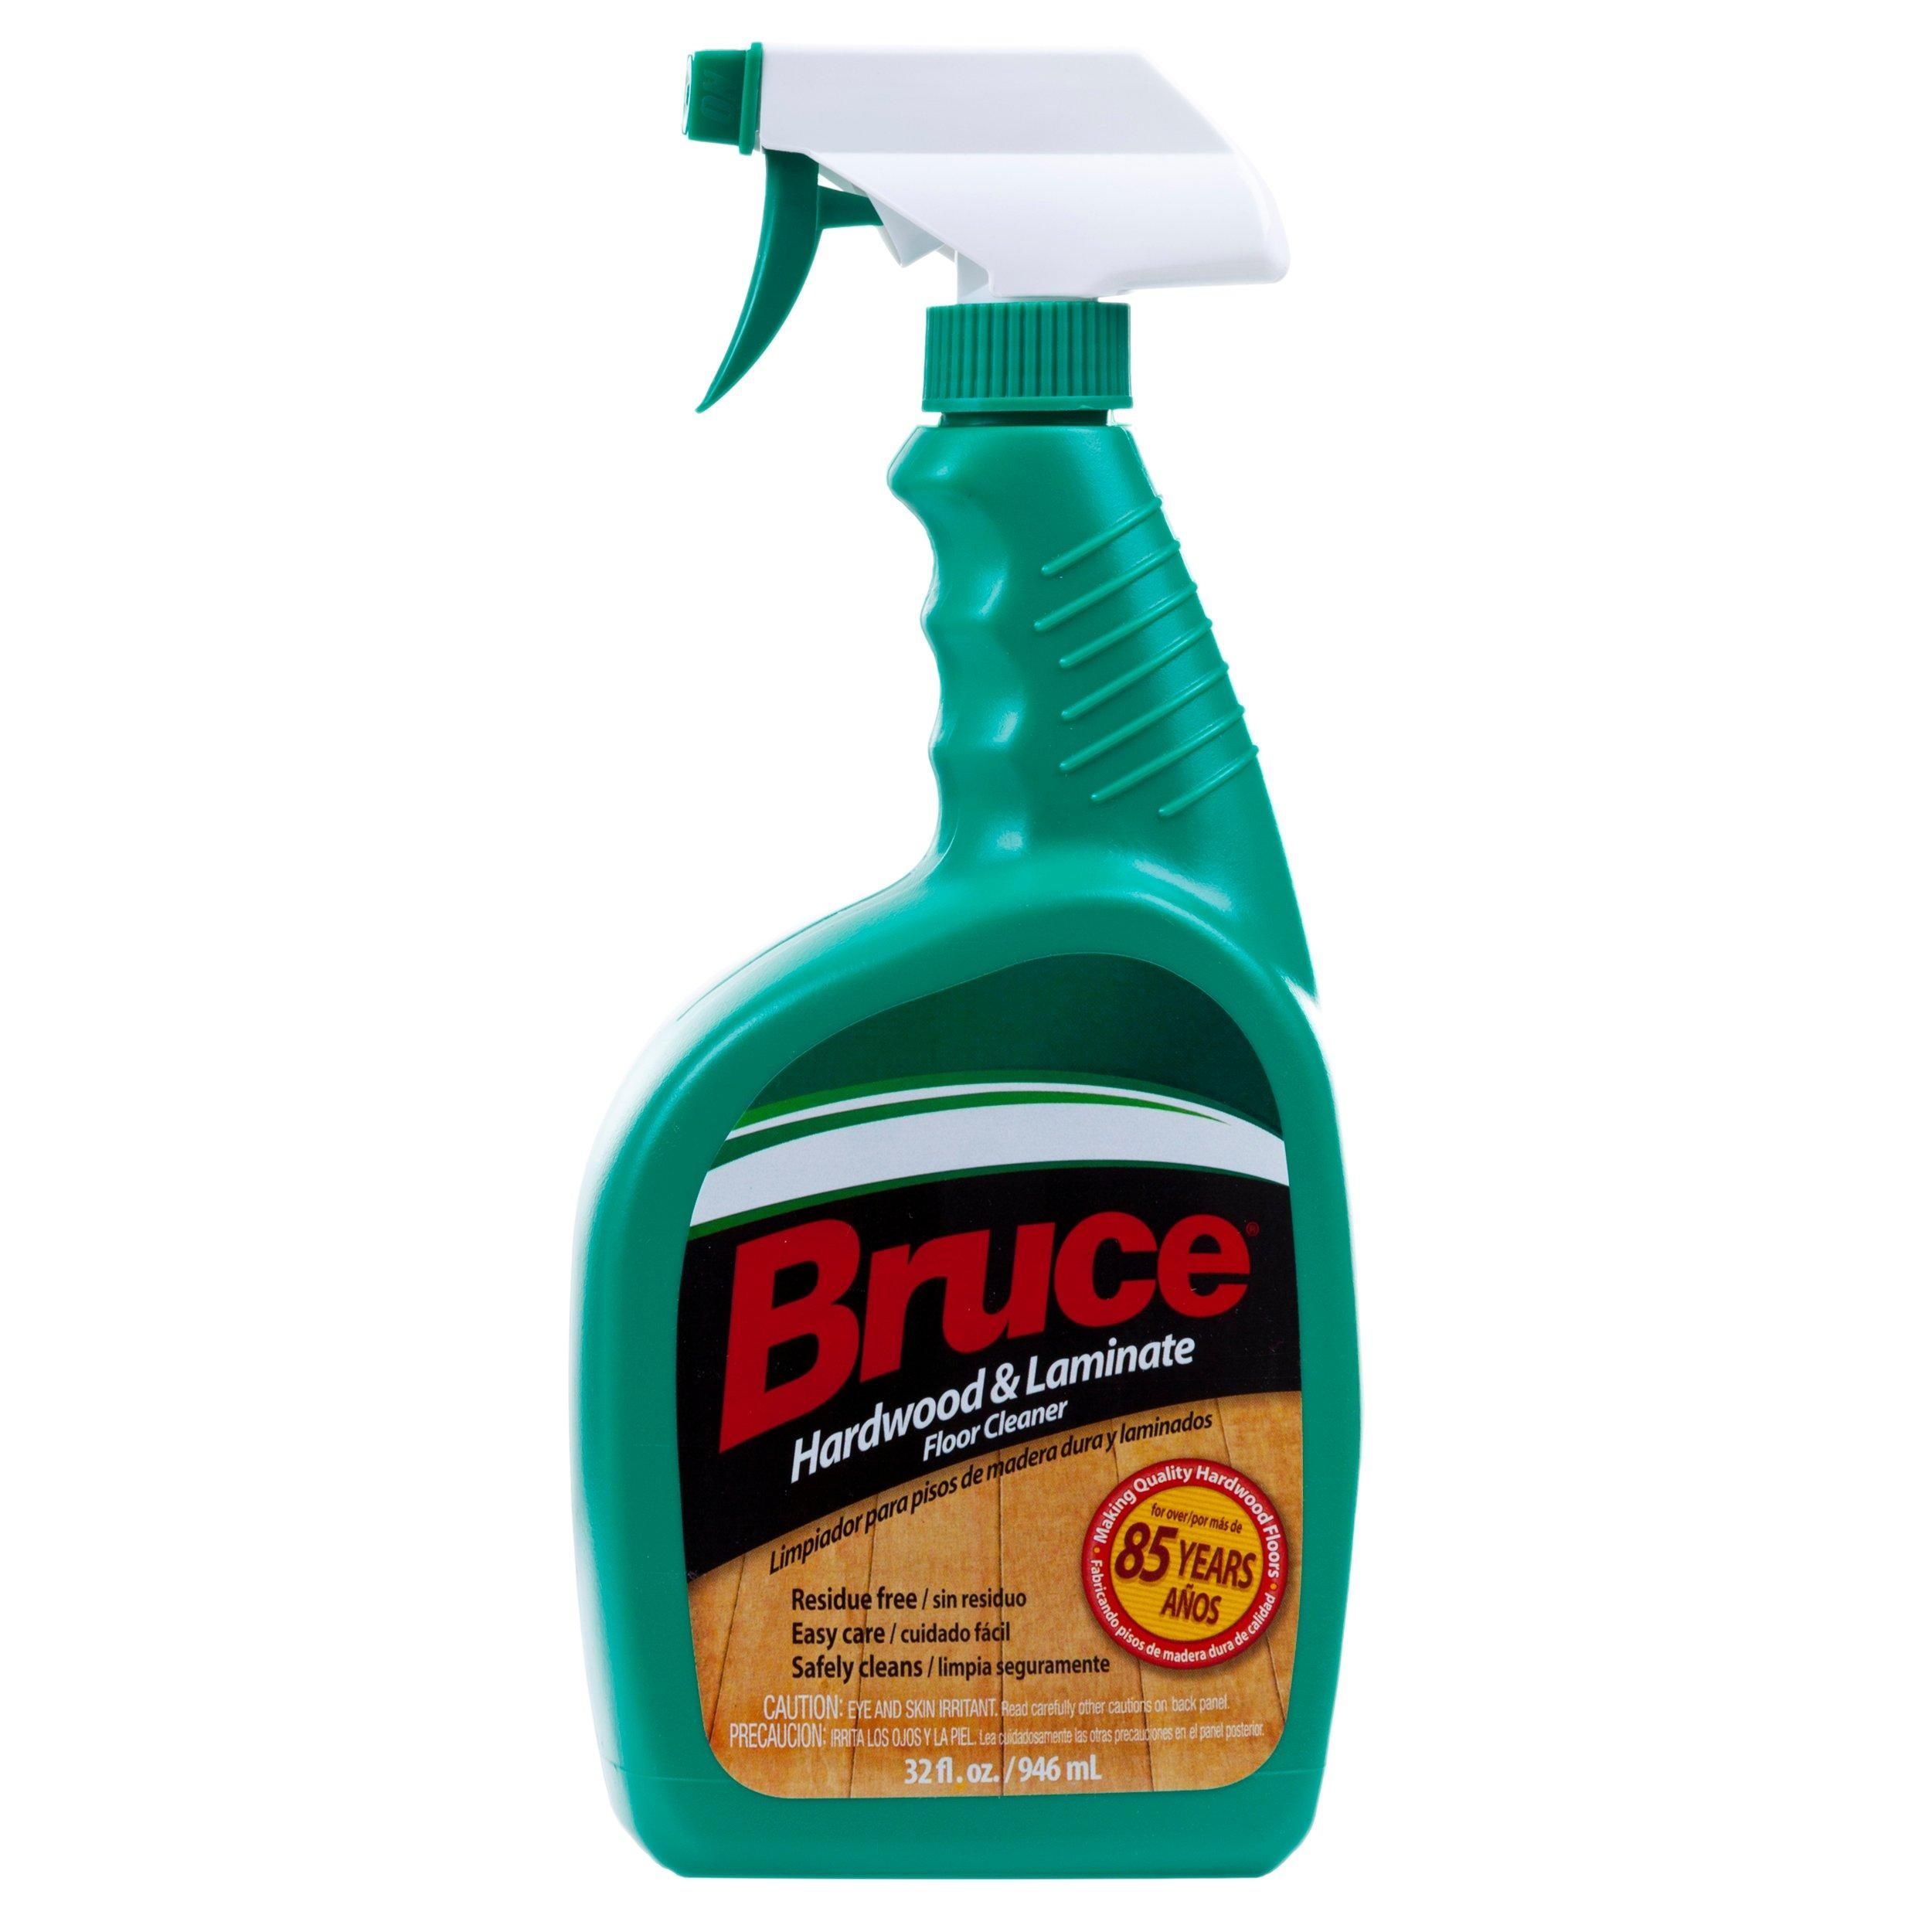 Bruce Hardwood And Laminate Cleaner In